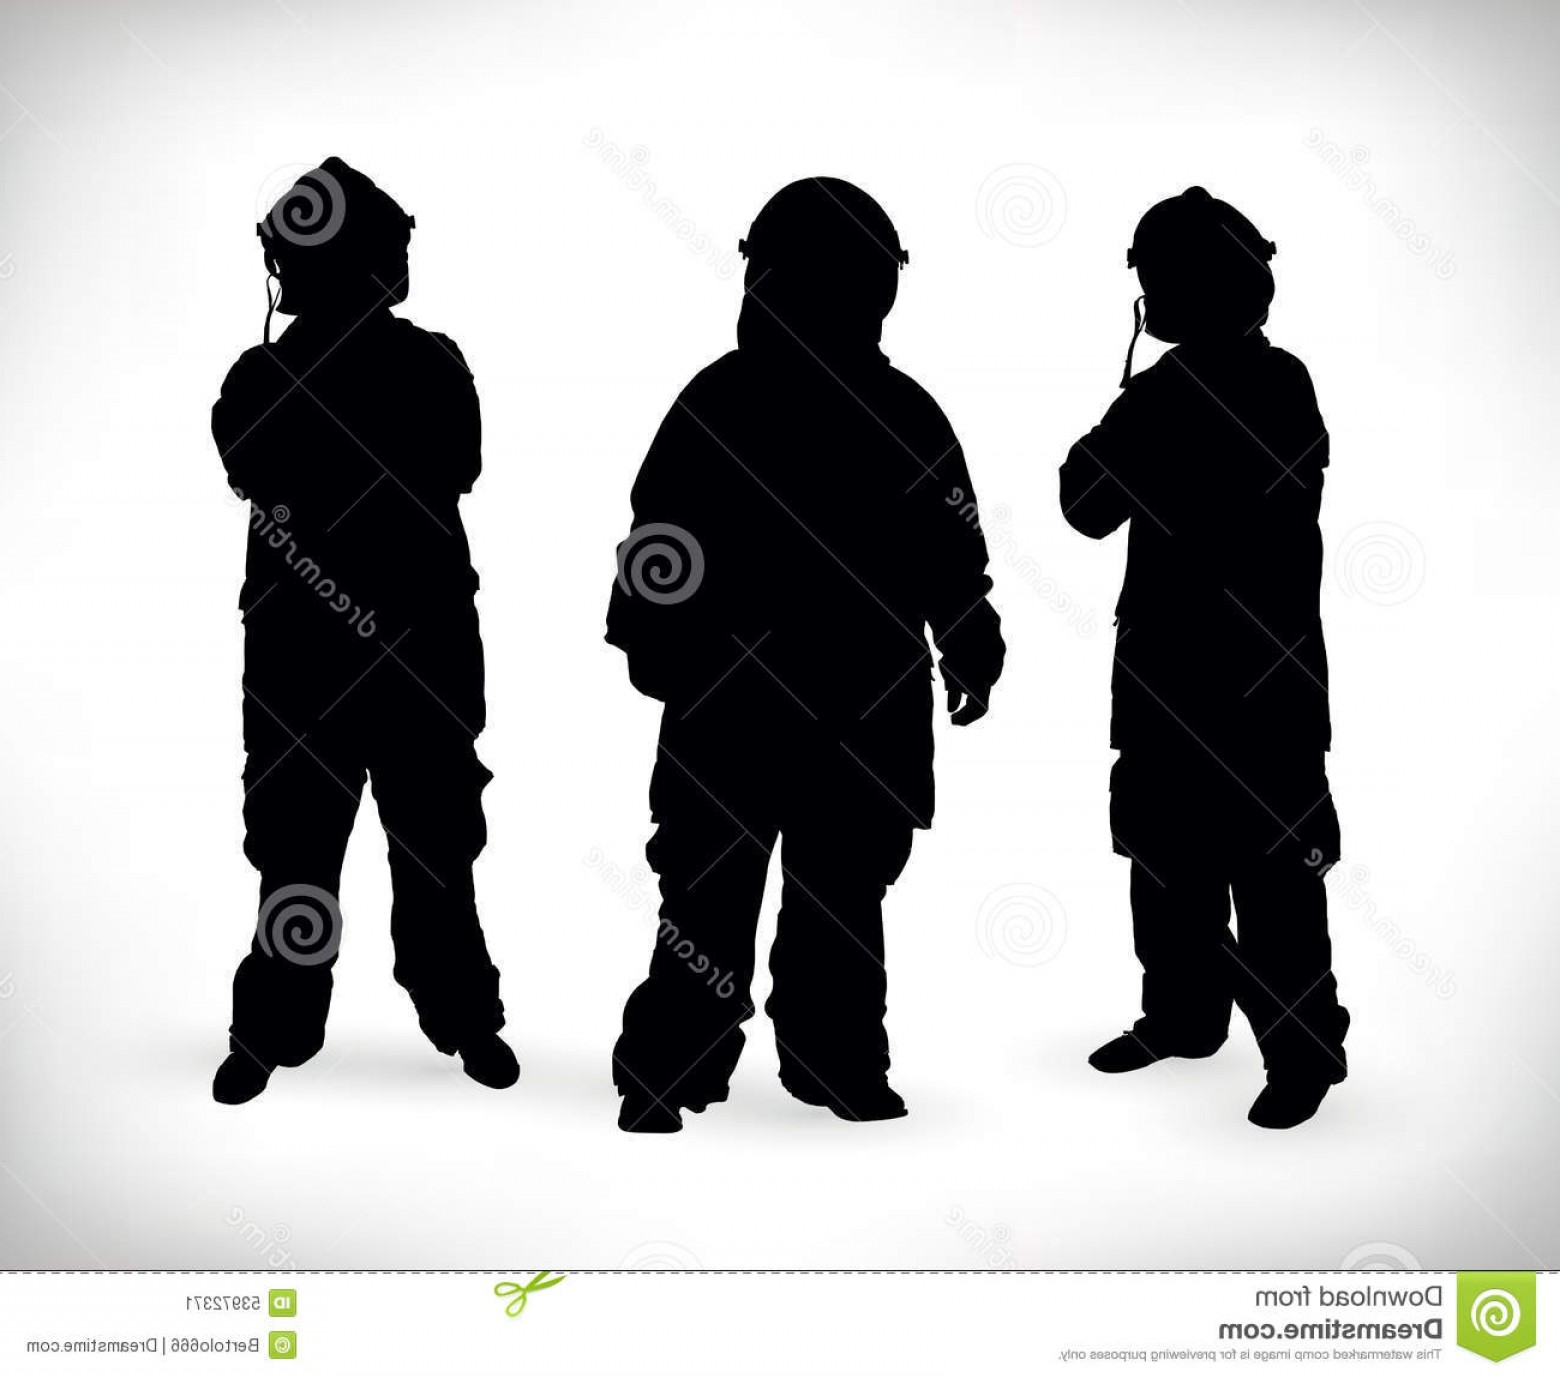 Jpeg clipart silhouette of emergency service patients image library stock Stock Illustration Fireman Silhouette Vector Illustration Isolated ... image library stock